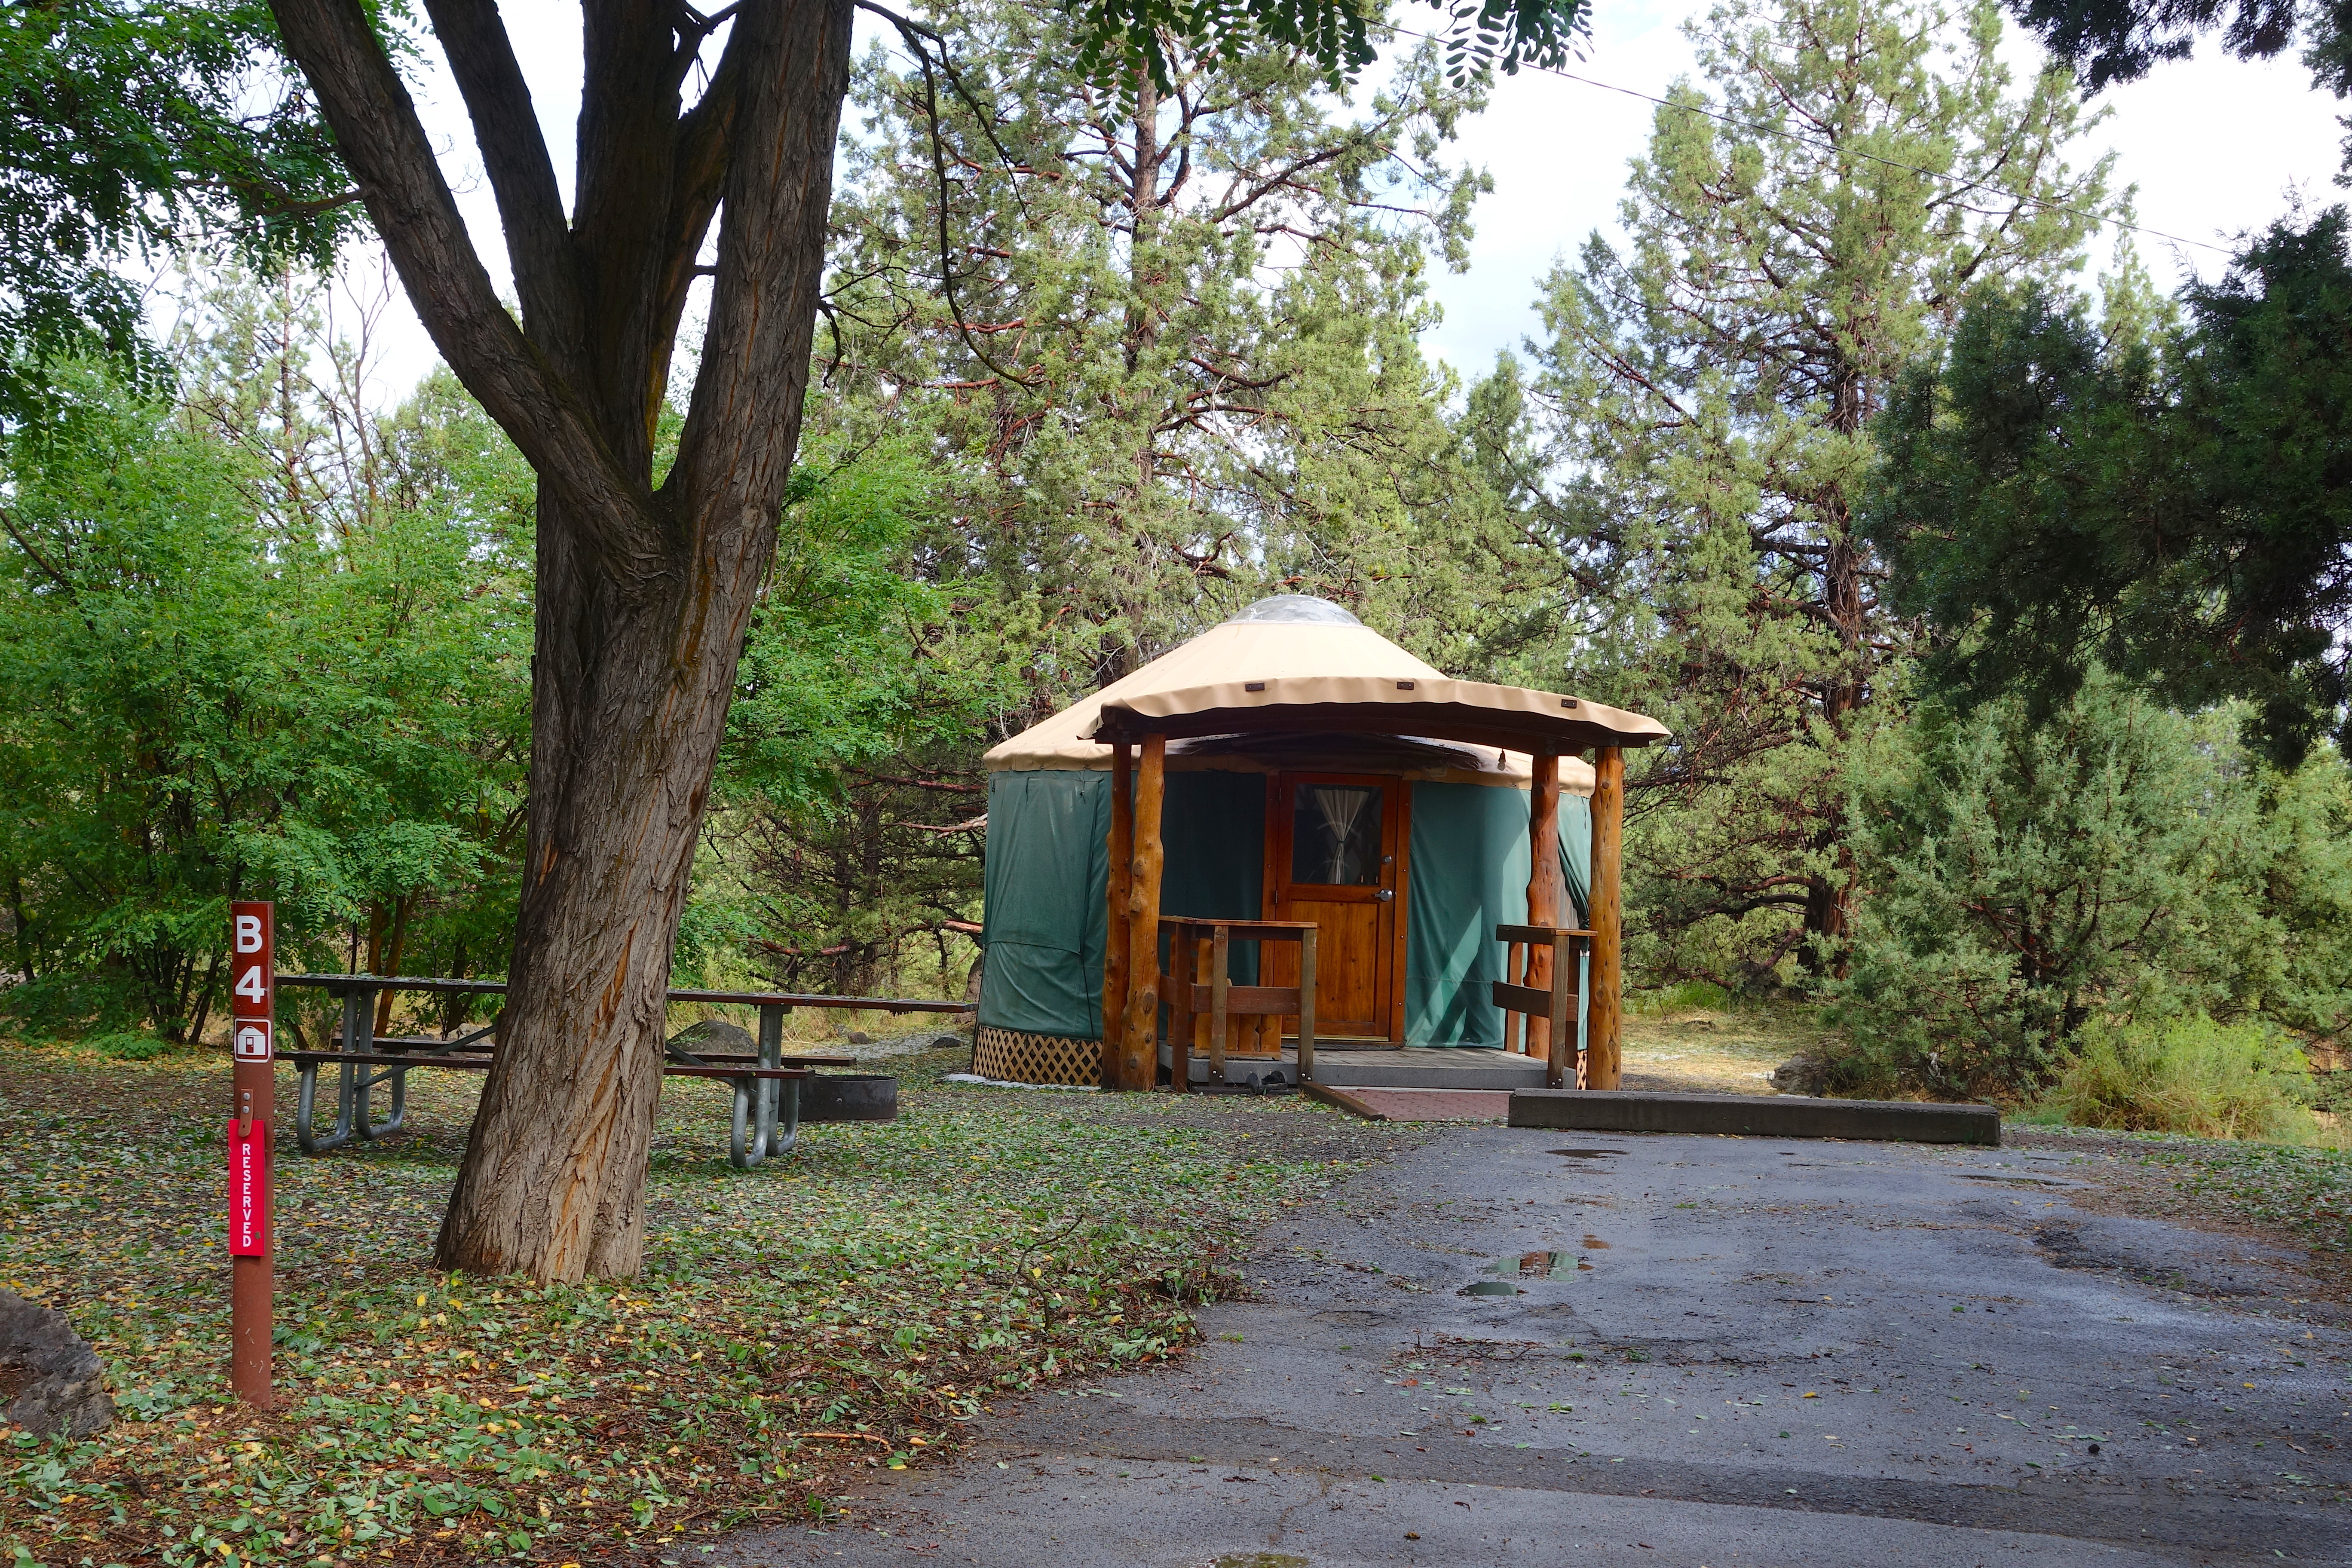 Yurt Rental - Guide to Tumalo Oregon - State Park Campground